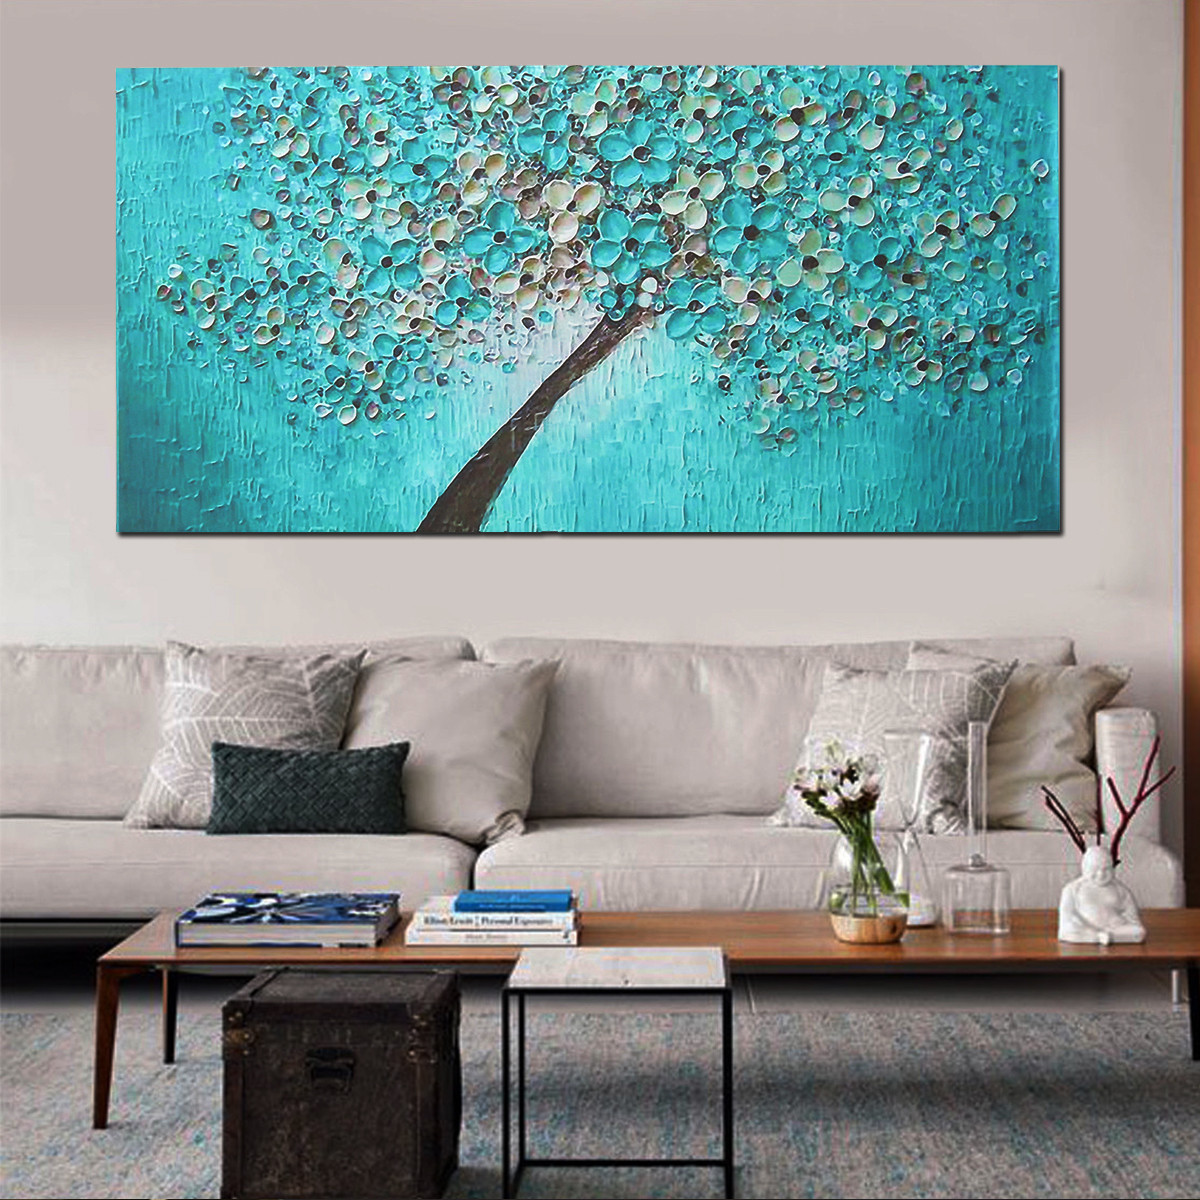 Unframed Print Canvas Blue Plum Flower Oil Painting Picture Home Bedroom Wall Art Decor 24''x47''